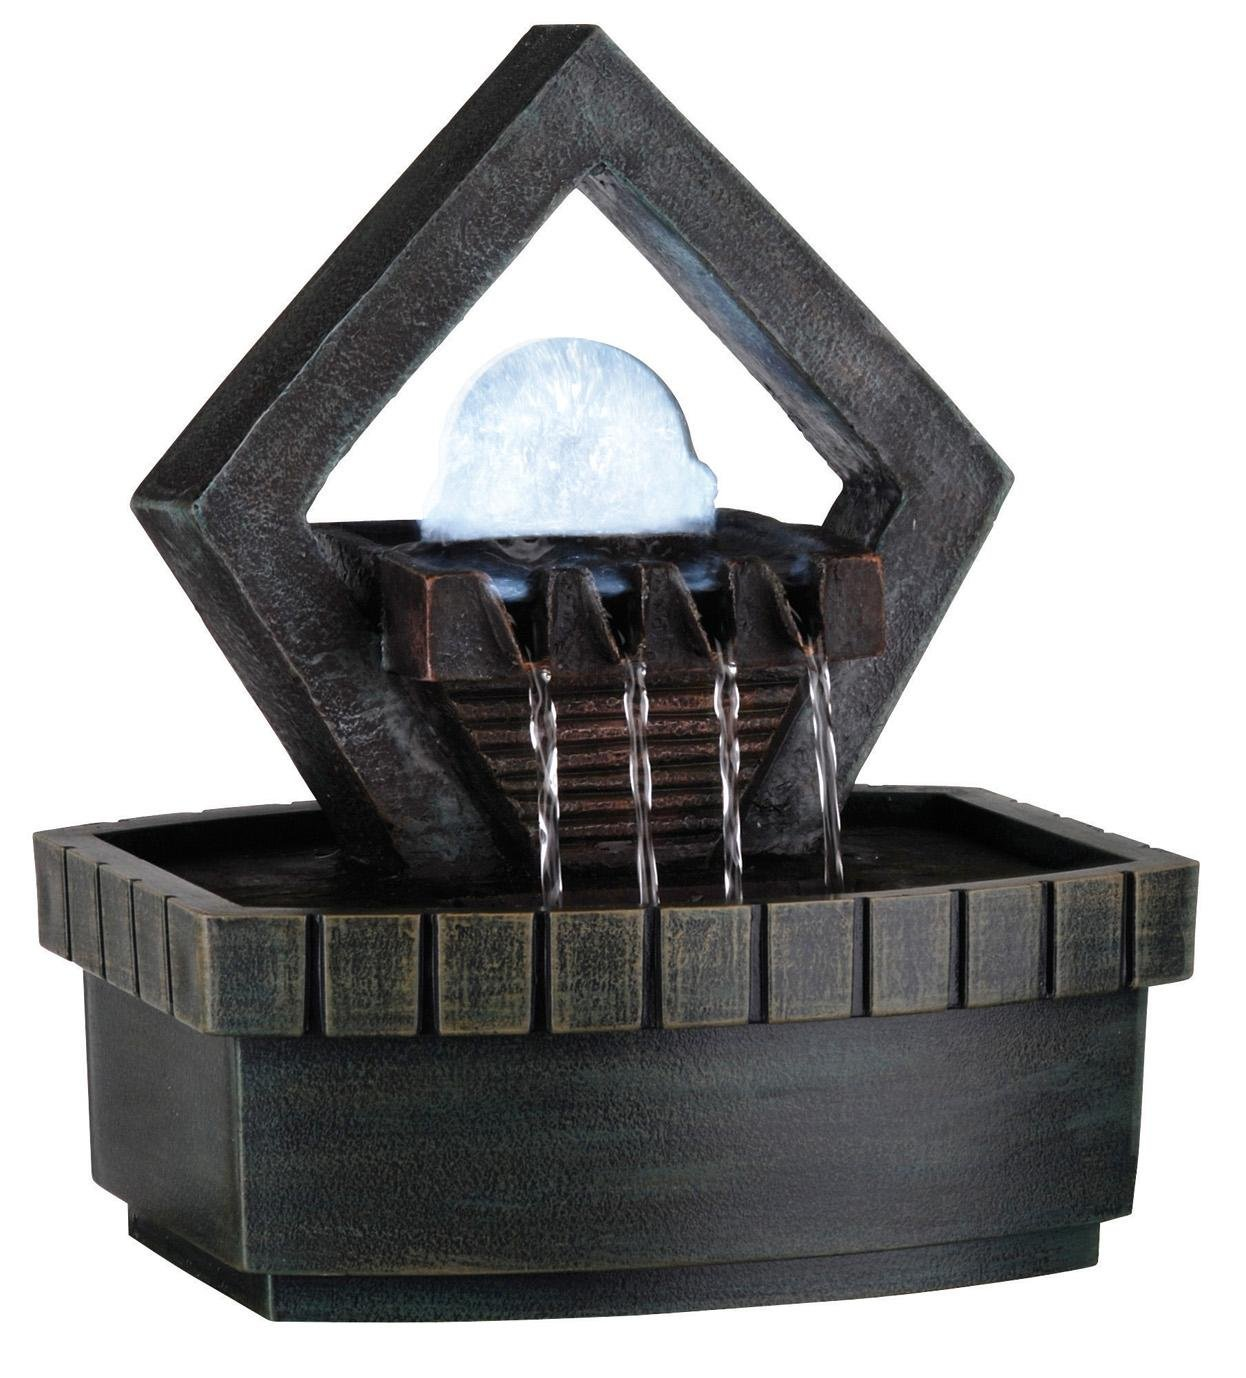 Amazon.com: OK LIGHTING FT-1154/1L 9-Inch H Fountain with 1 Light ...